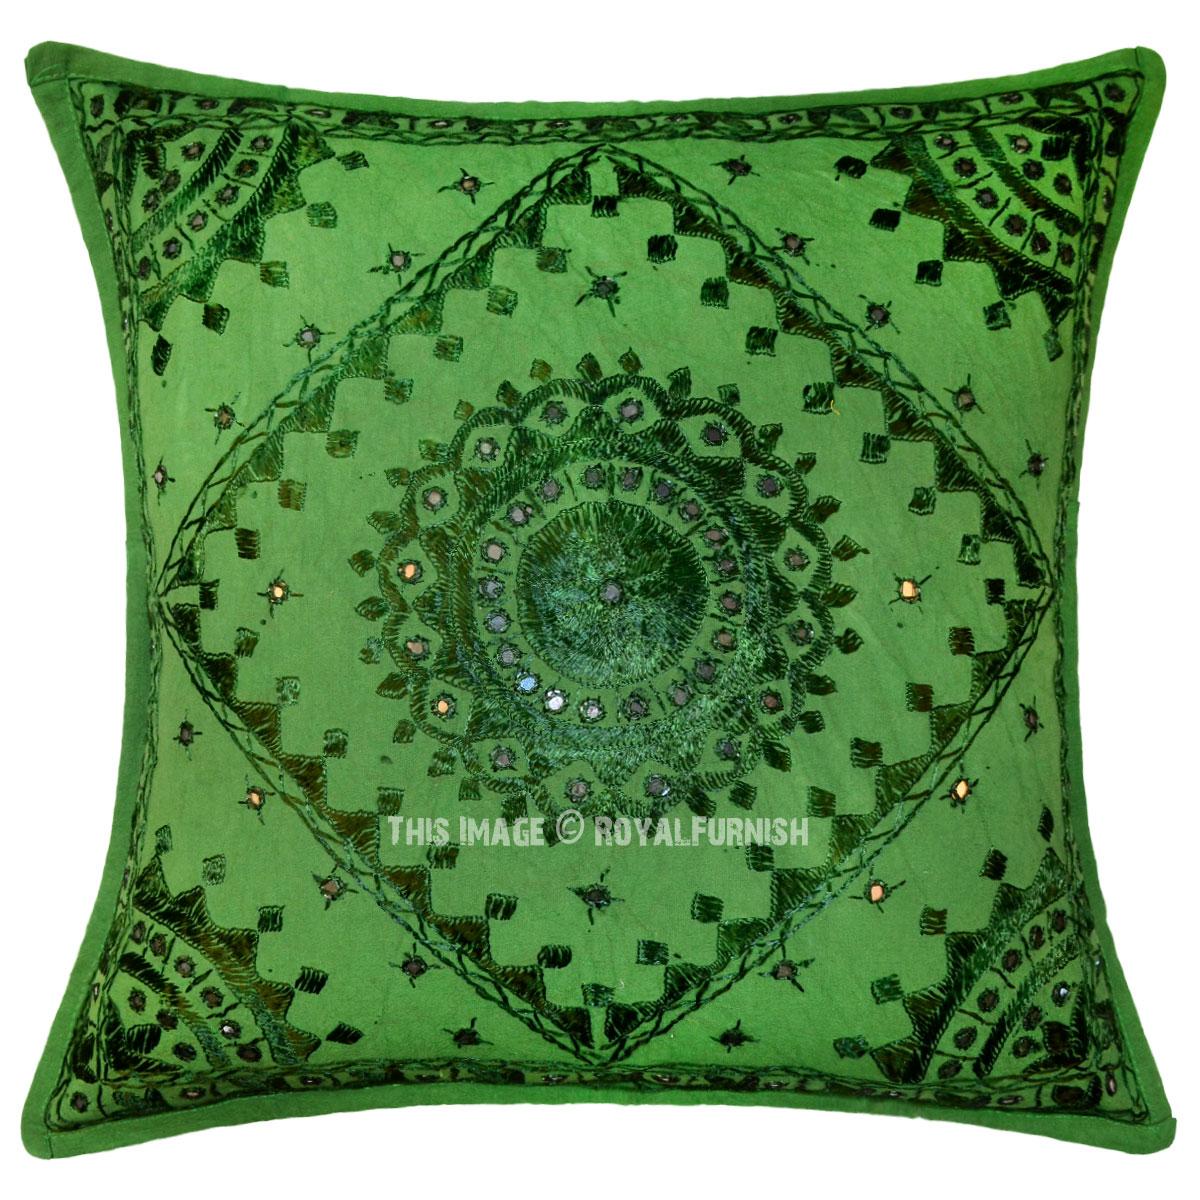 Green Couch With Throw Pillows : Green Mirror Embroidered Cotton Sofa Indian Throw Pillow - RoyalFurnish.com